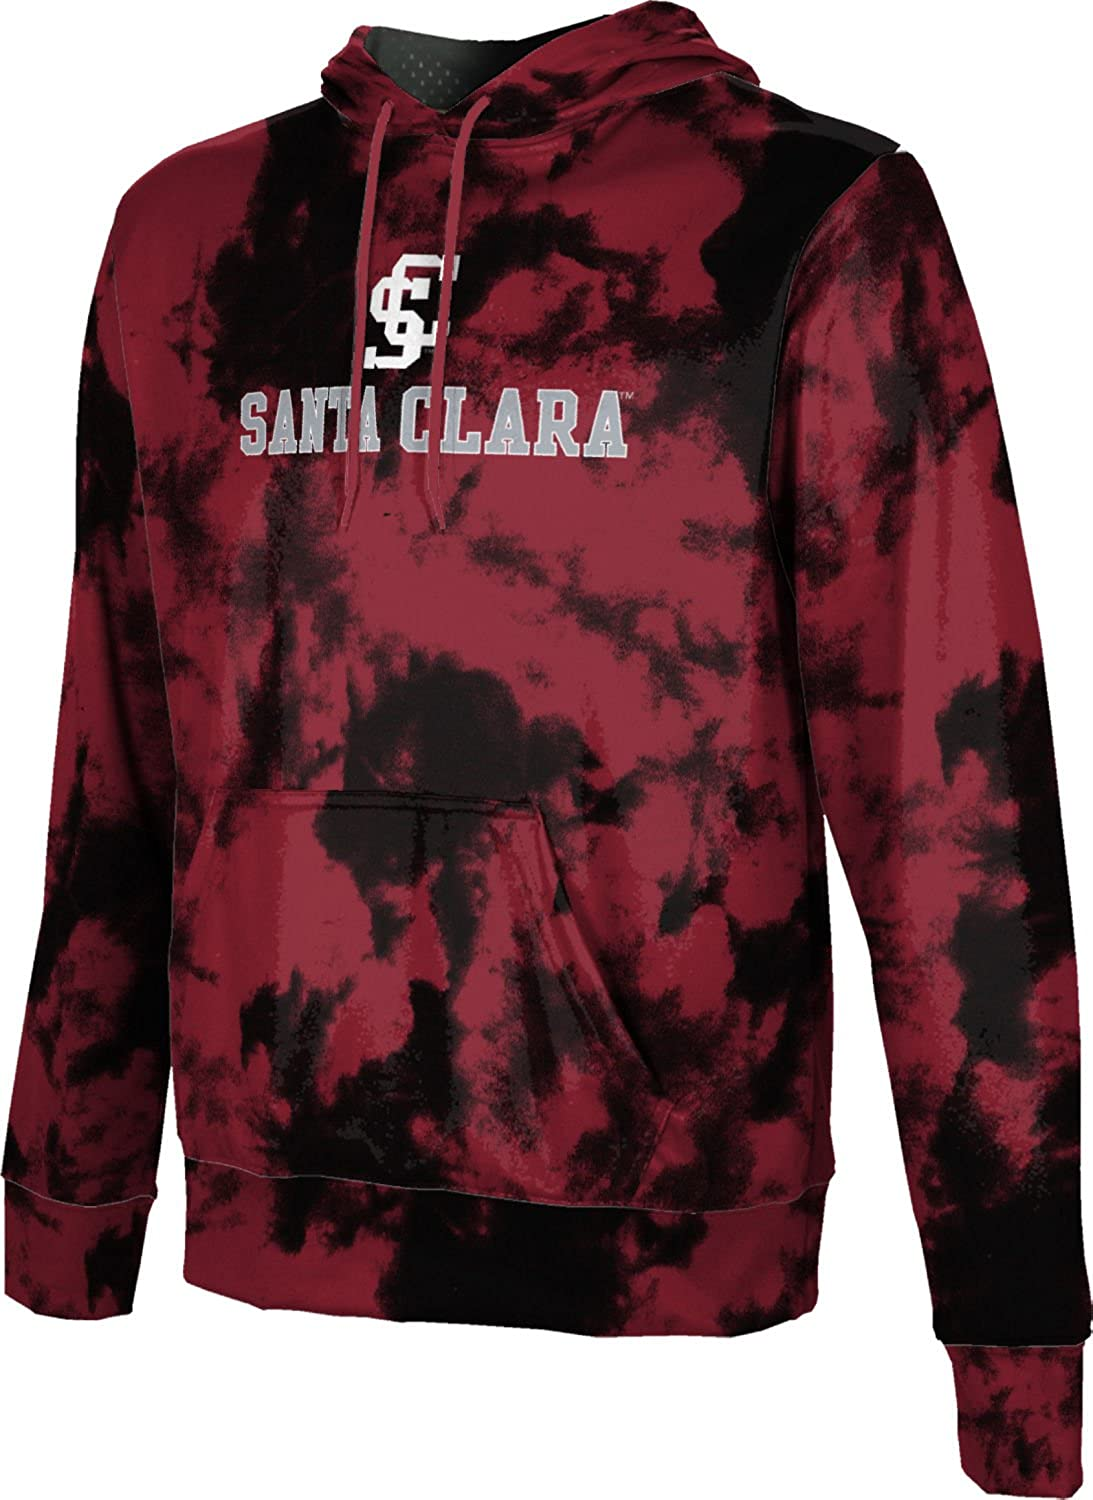 68003b7e8eb1c Officially Collegiate Licensed apparel for Santa Clara University hoodies  are made with lightweight